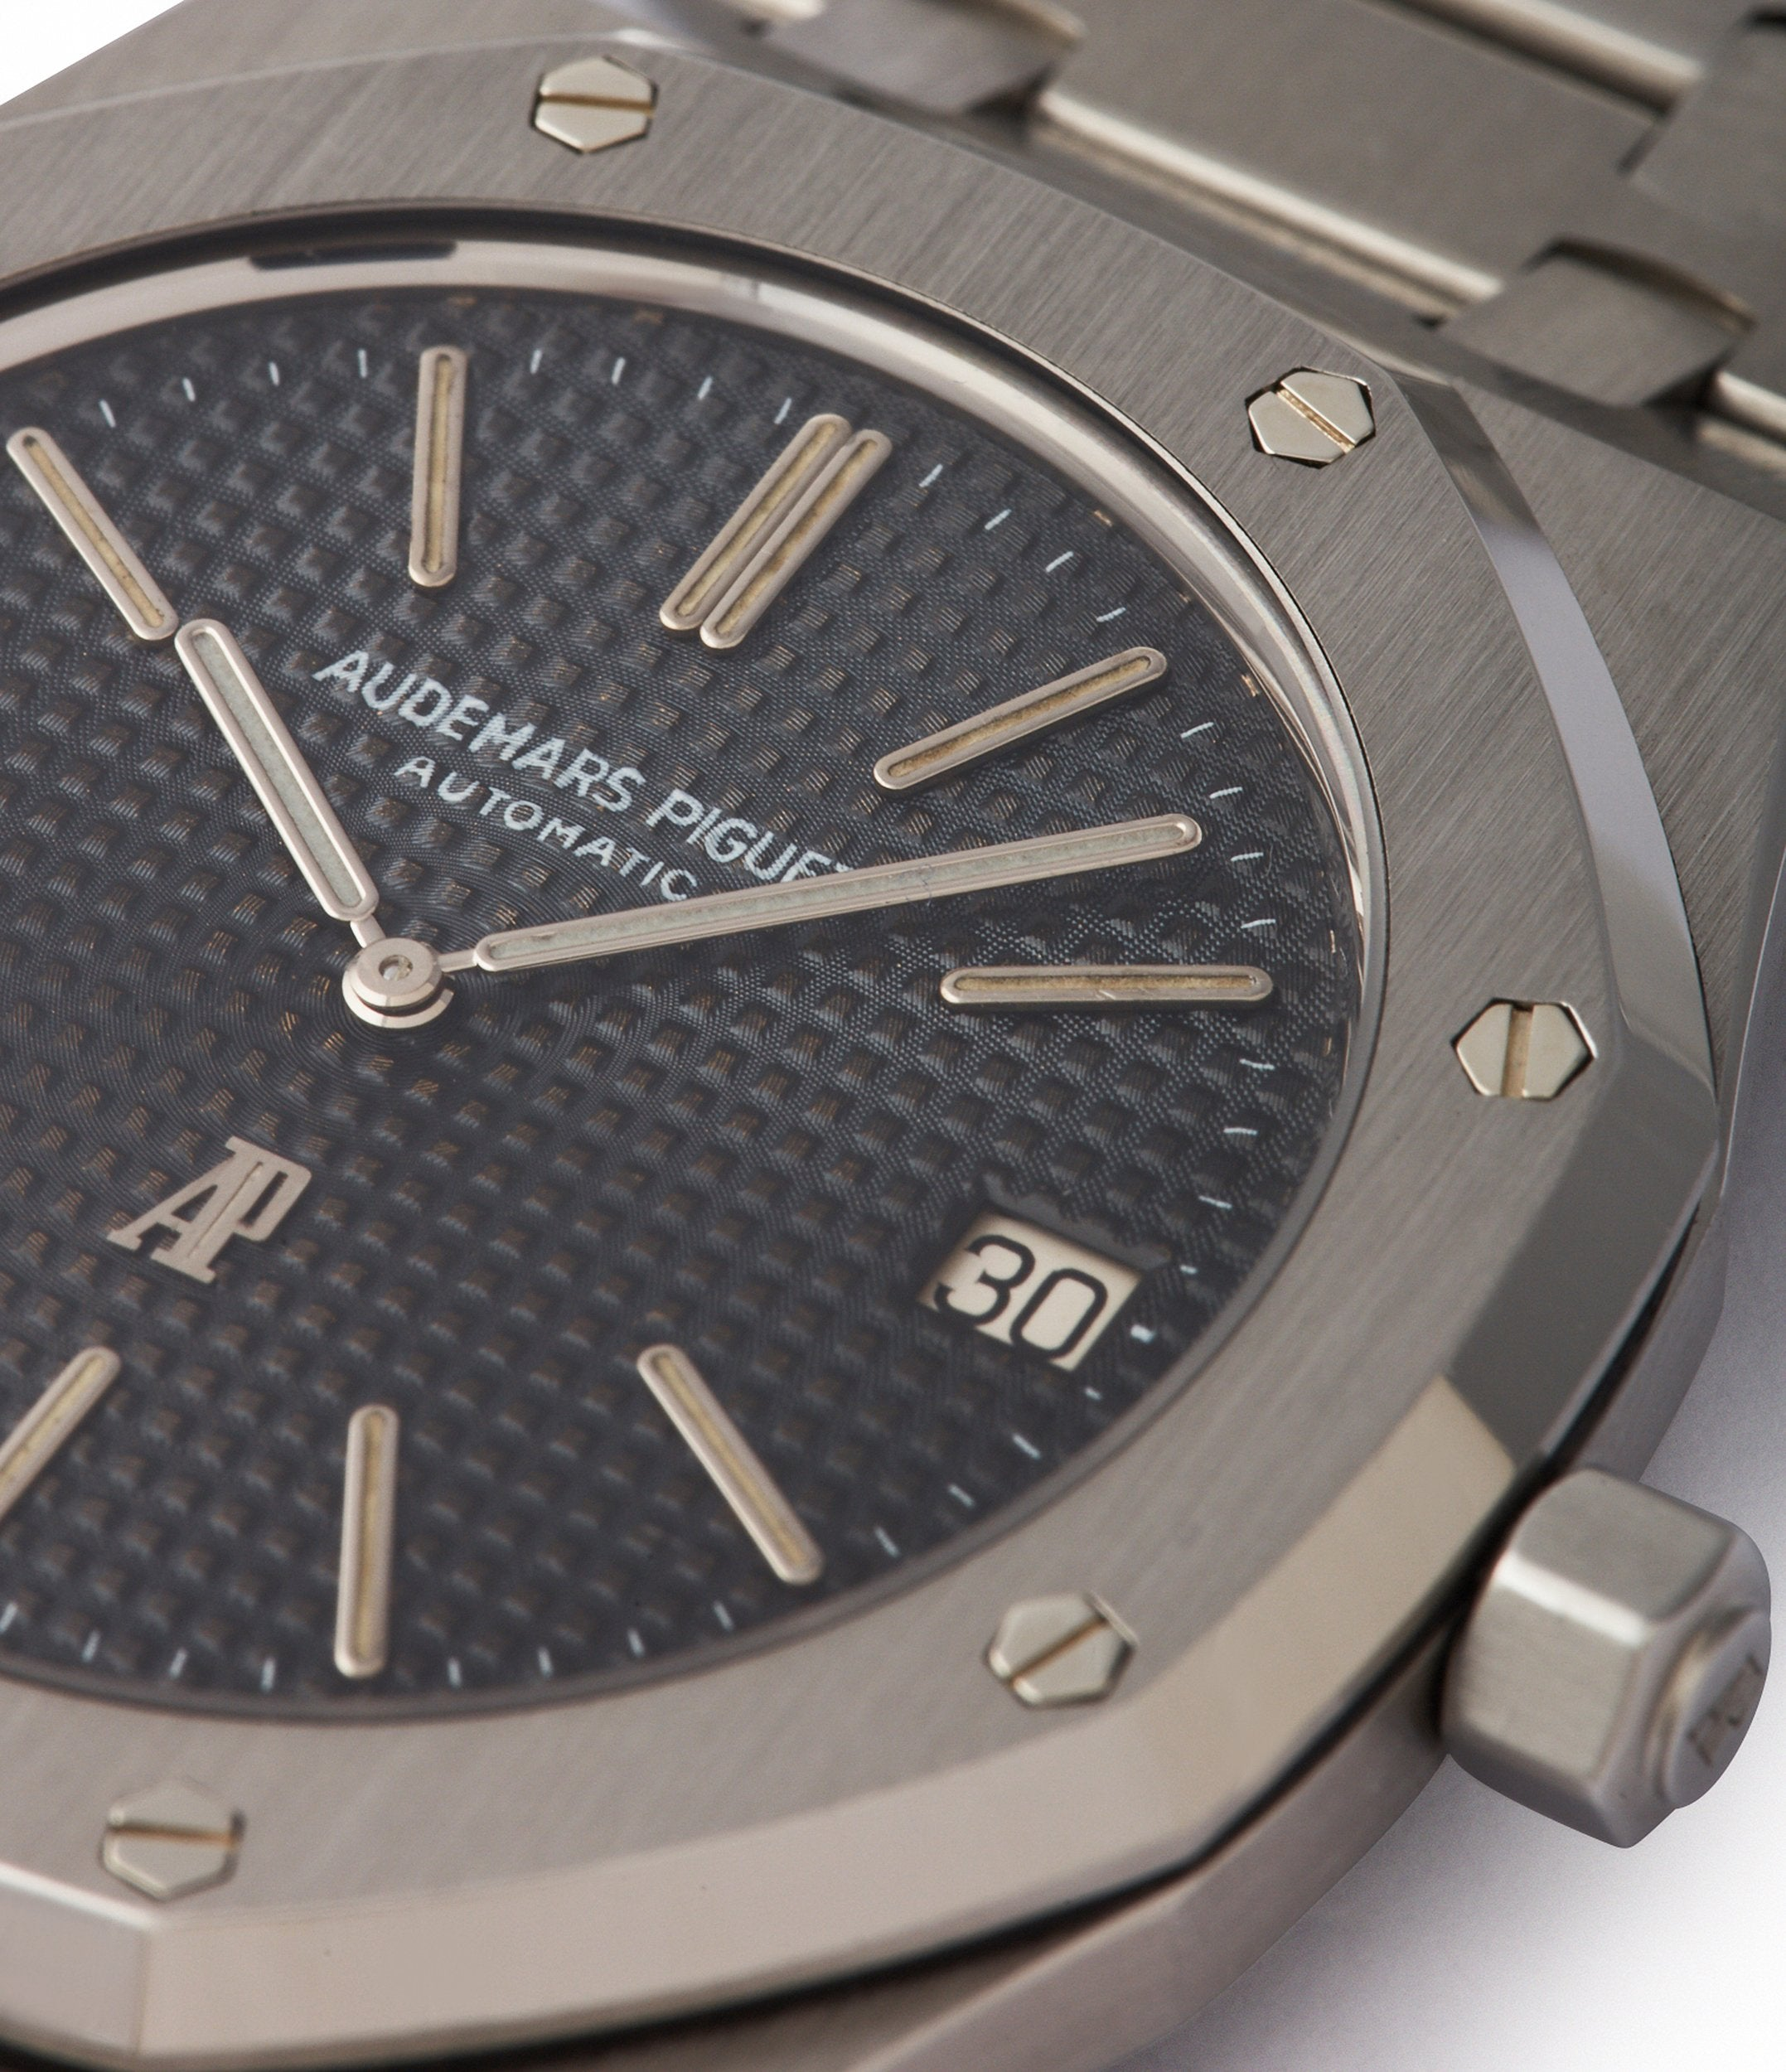 original dial Audemars Piguet Royal Oak early A-series steel 5402A steel sports luxury watch for sale online A Collected Man London UK specialist rare watches